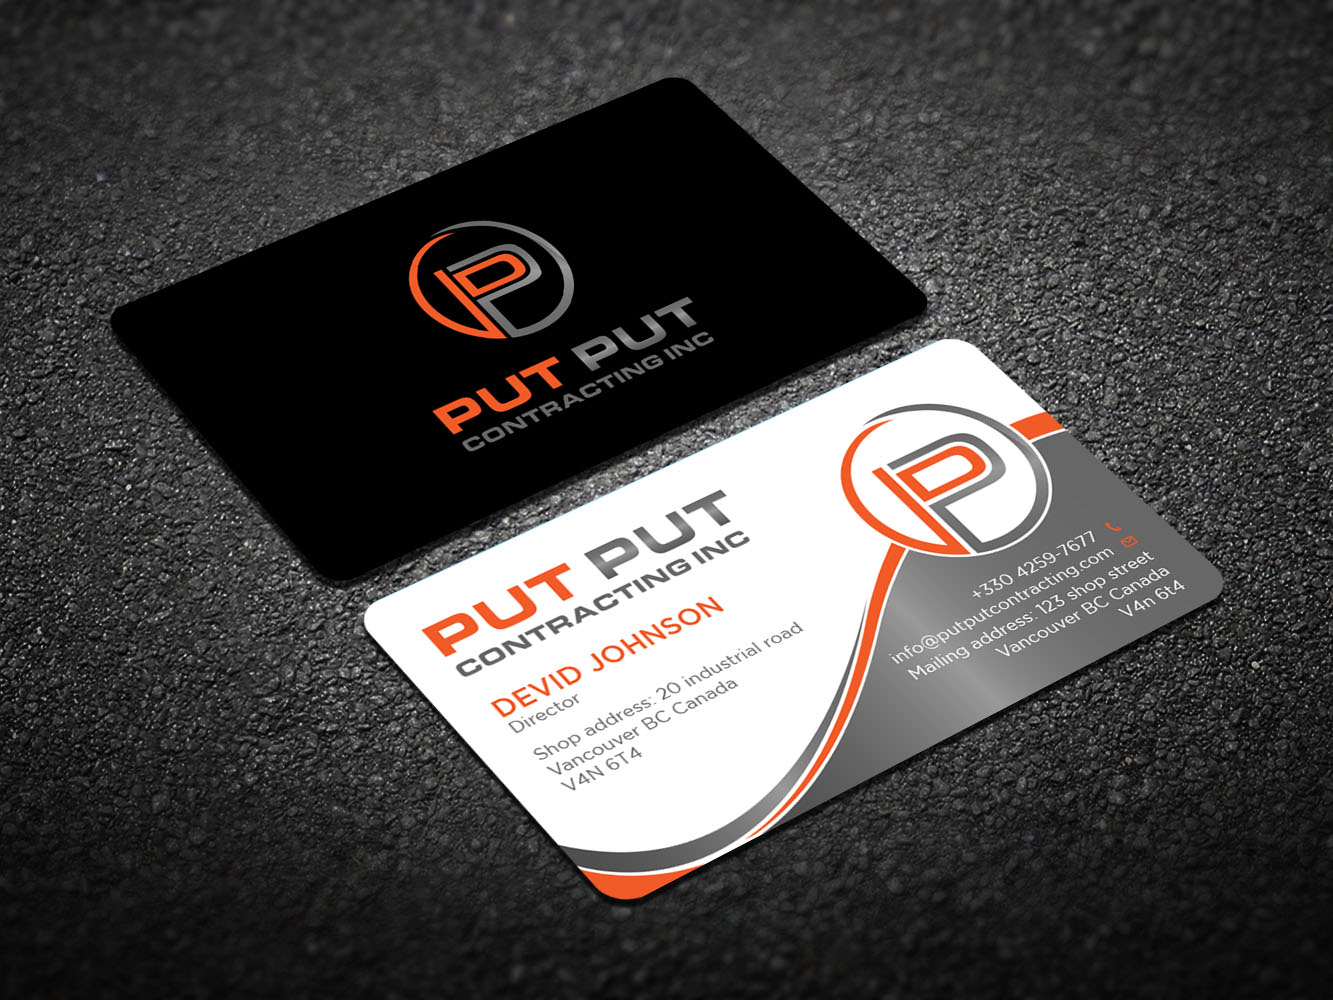 206 bold business card designs telecommunications business card business card design by design xeneration for put put contracting inc design colourmoves